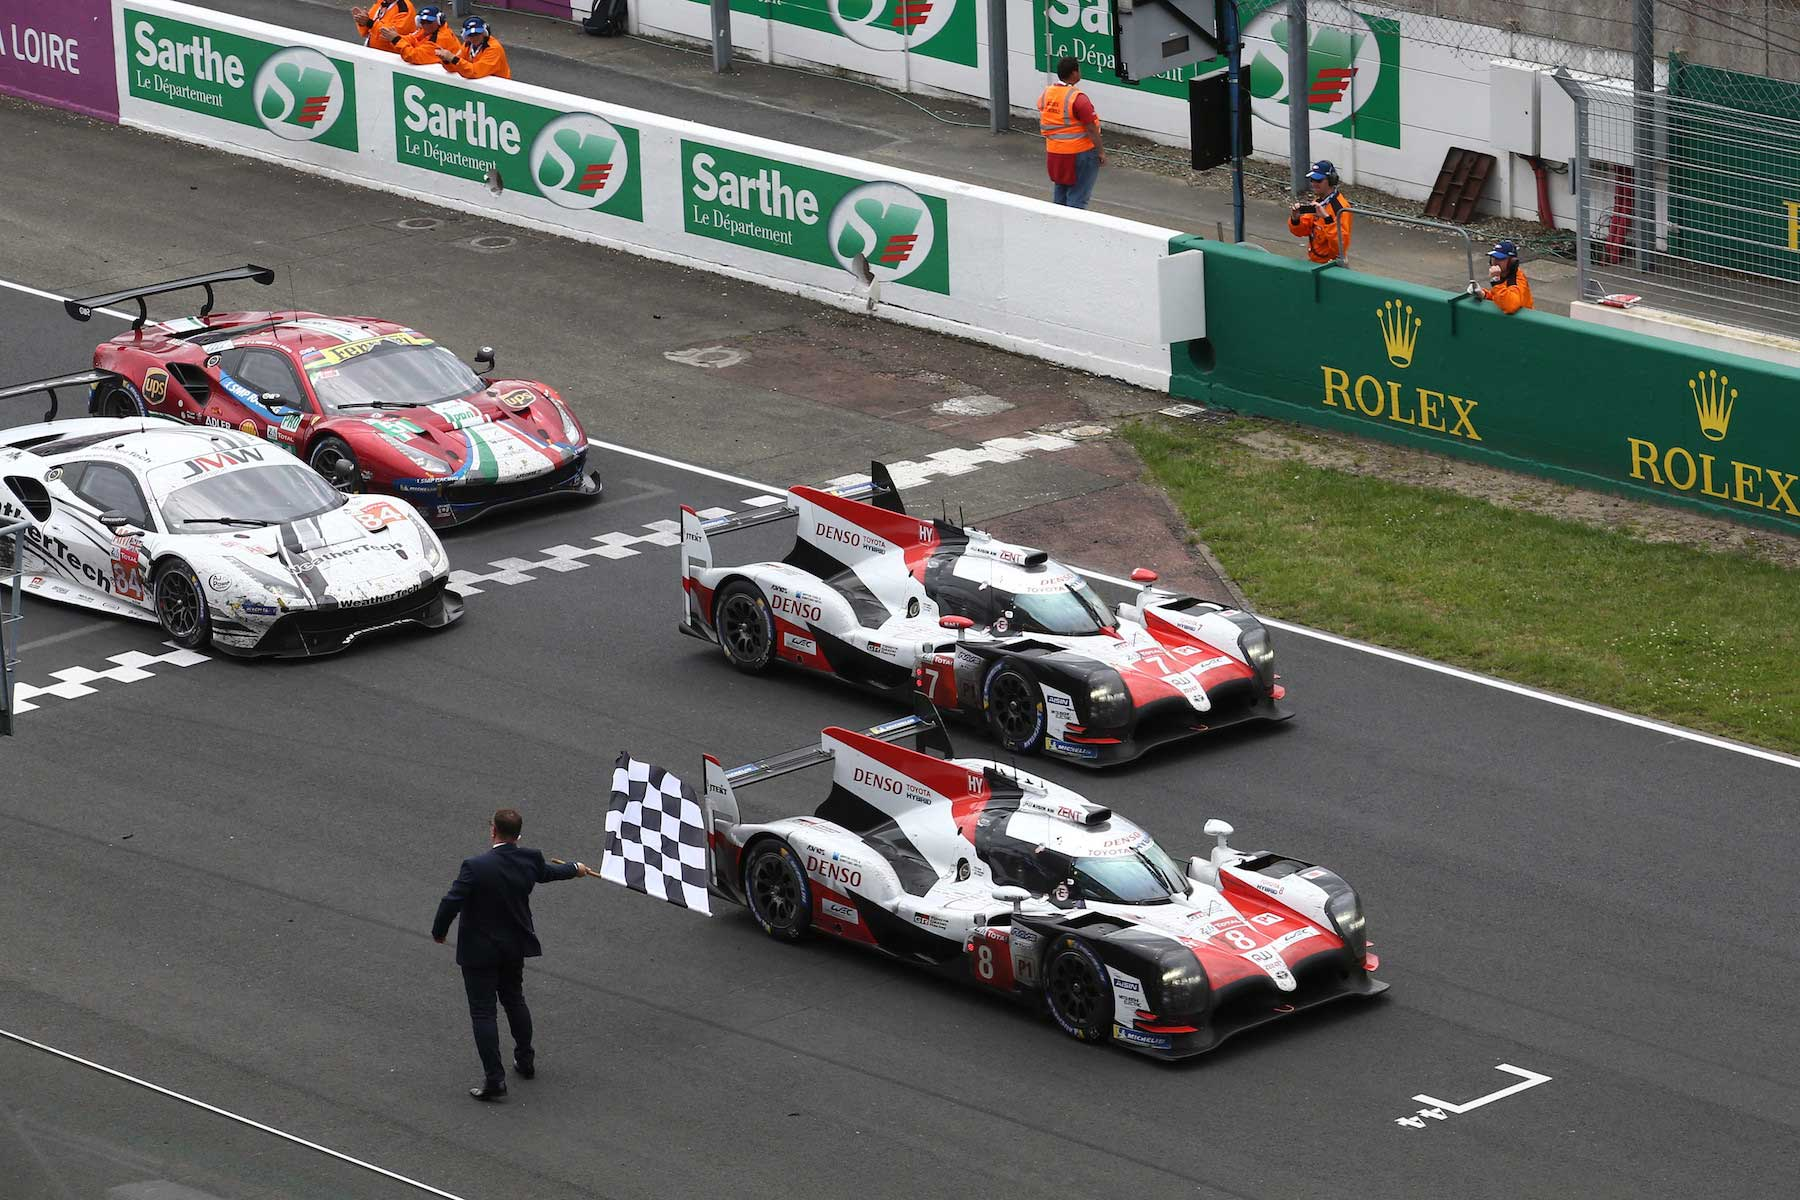 toyota takes historic 1 2 victory at le mans 24 hours race motoring research. Black Bedroom Furniture Sets. Home Design Ideas